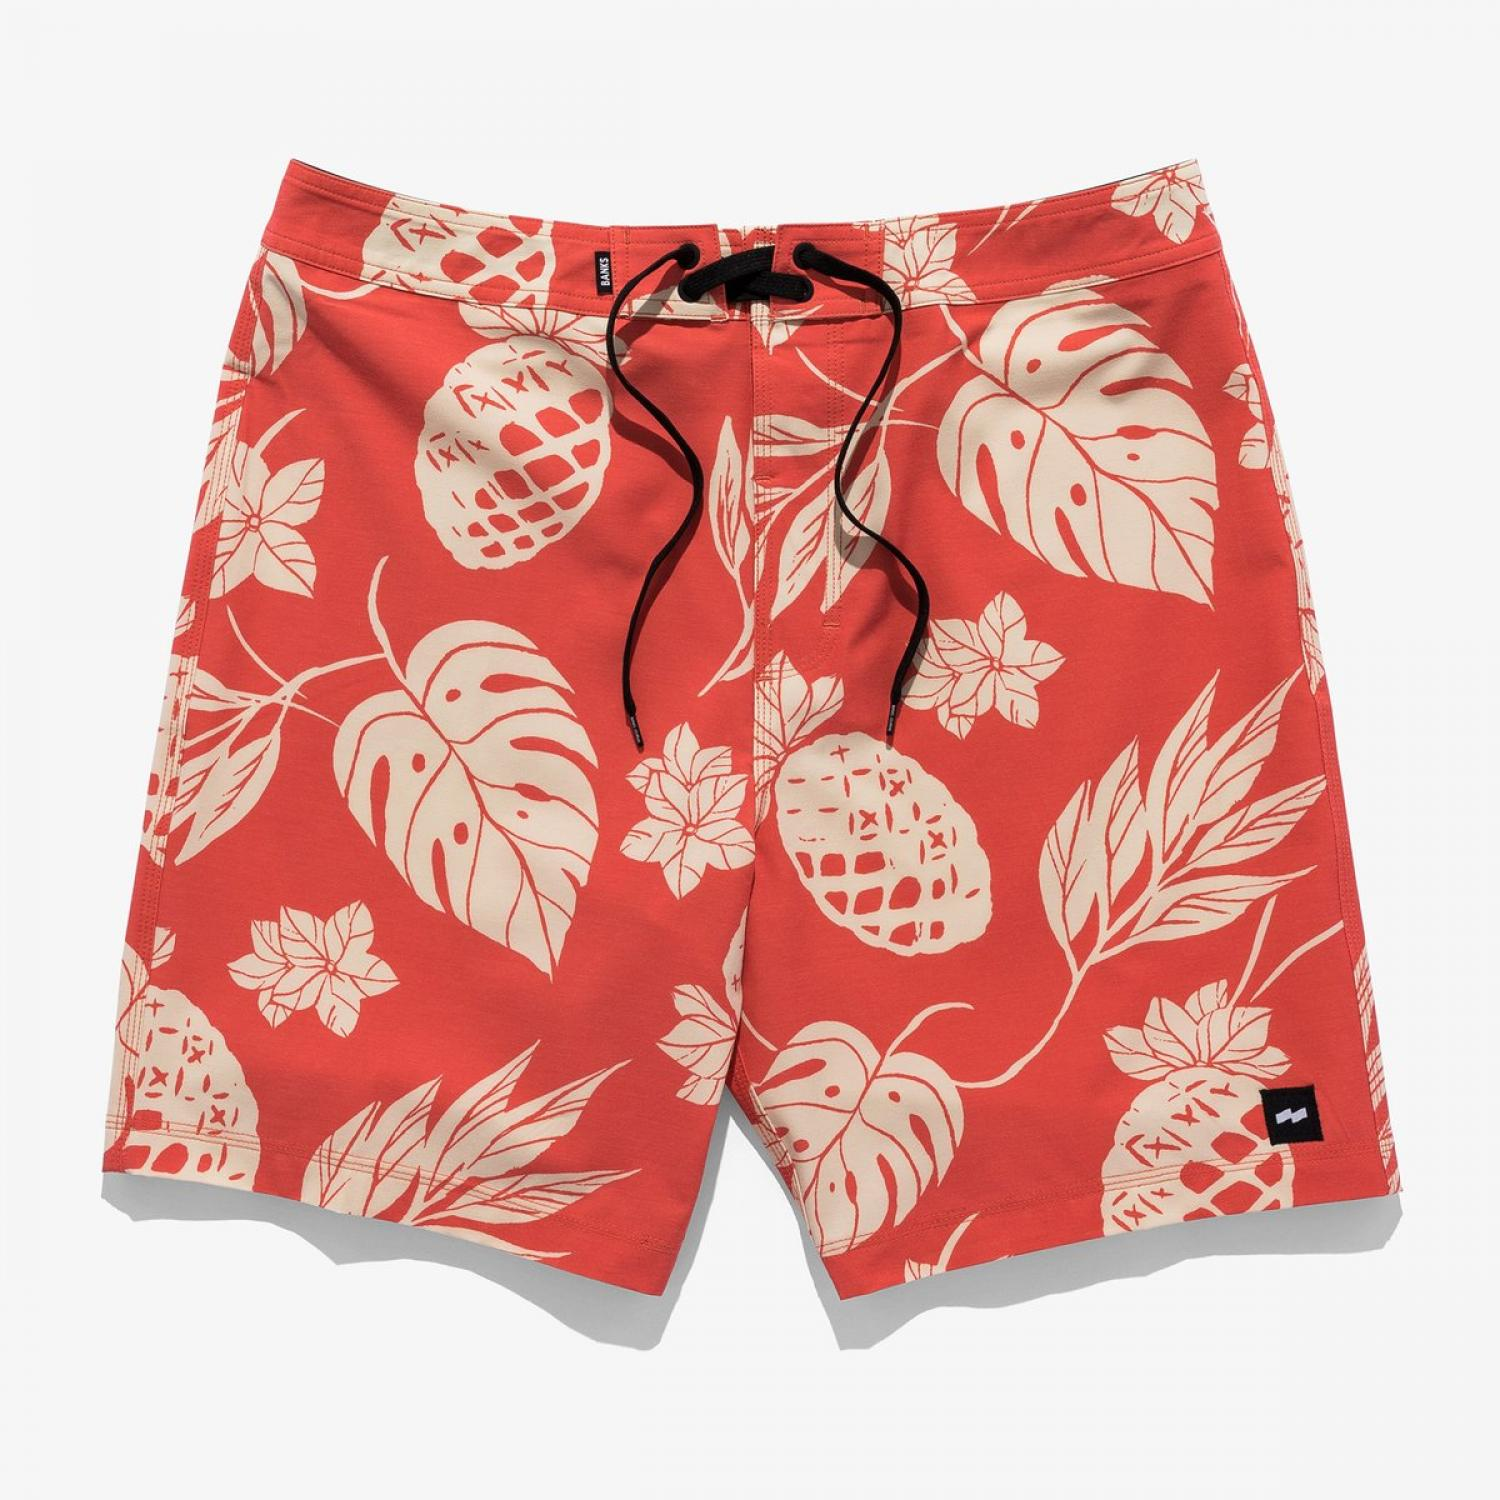 BANKS JOURNAL CANYONS BOARDSHORT 17inch